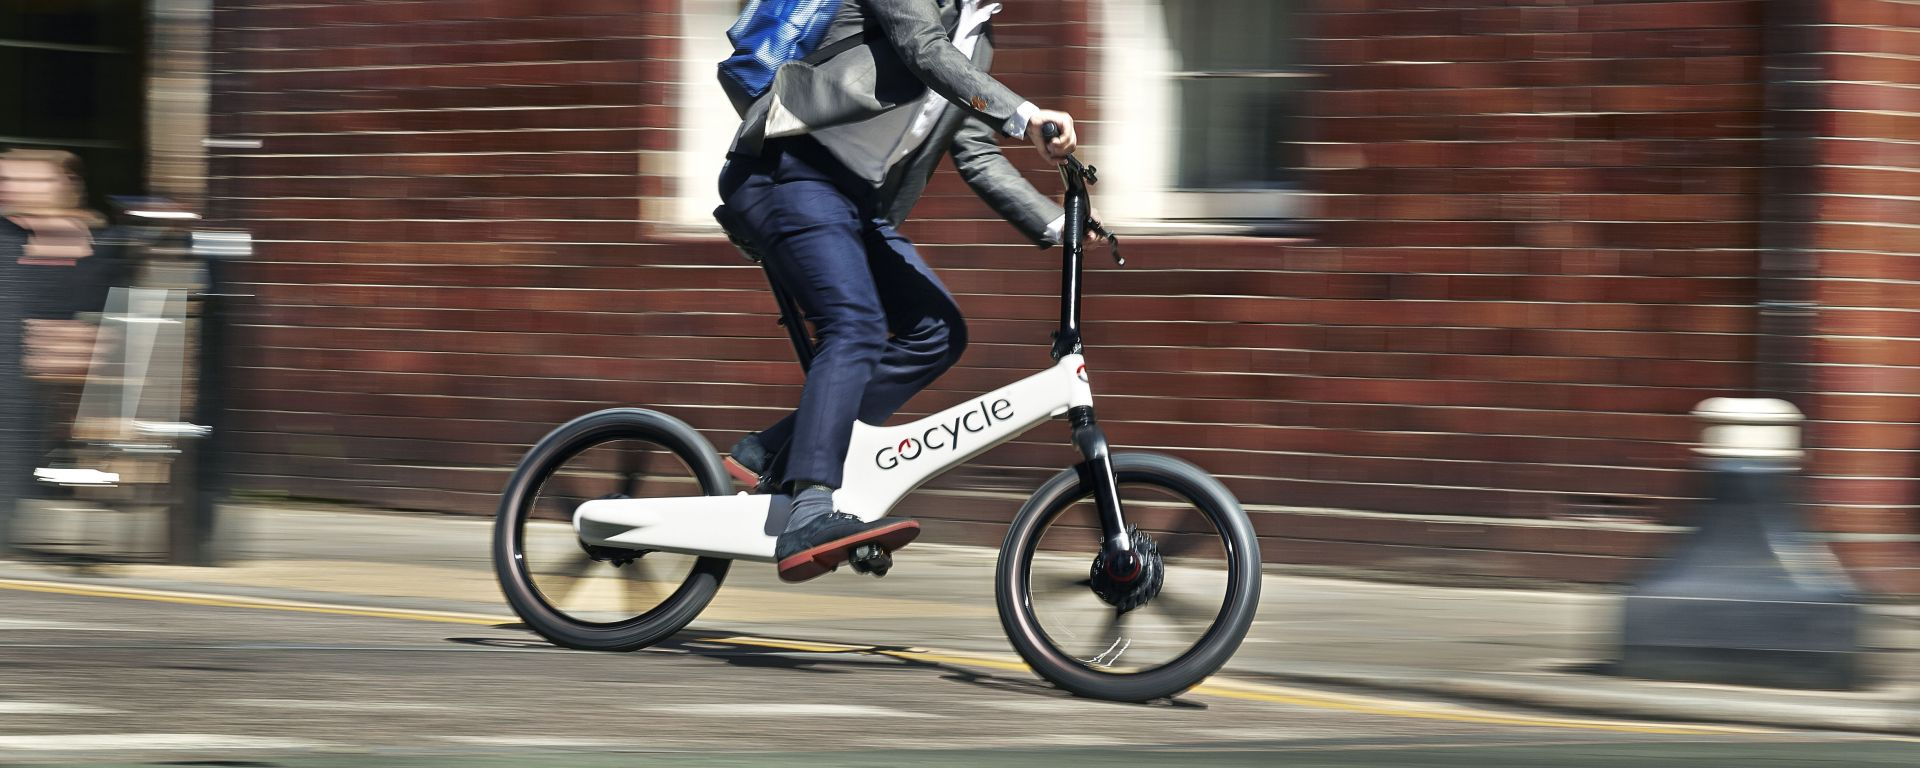 Gocycle G3, e-bike da città